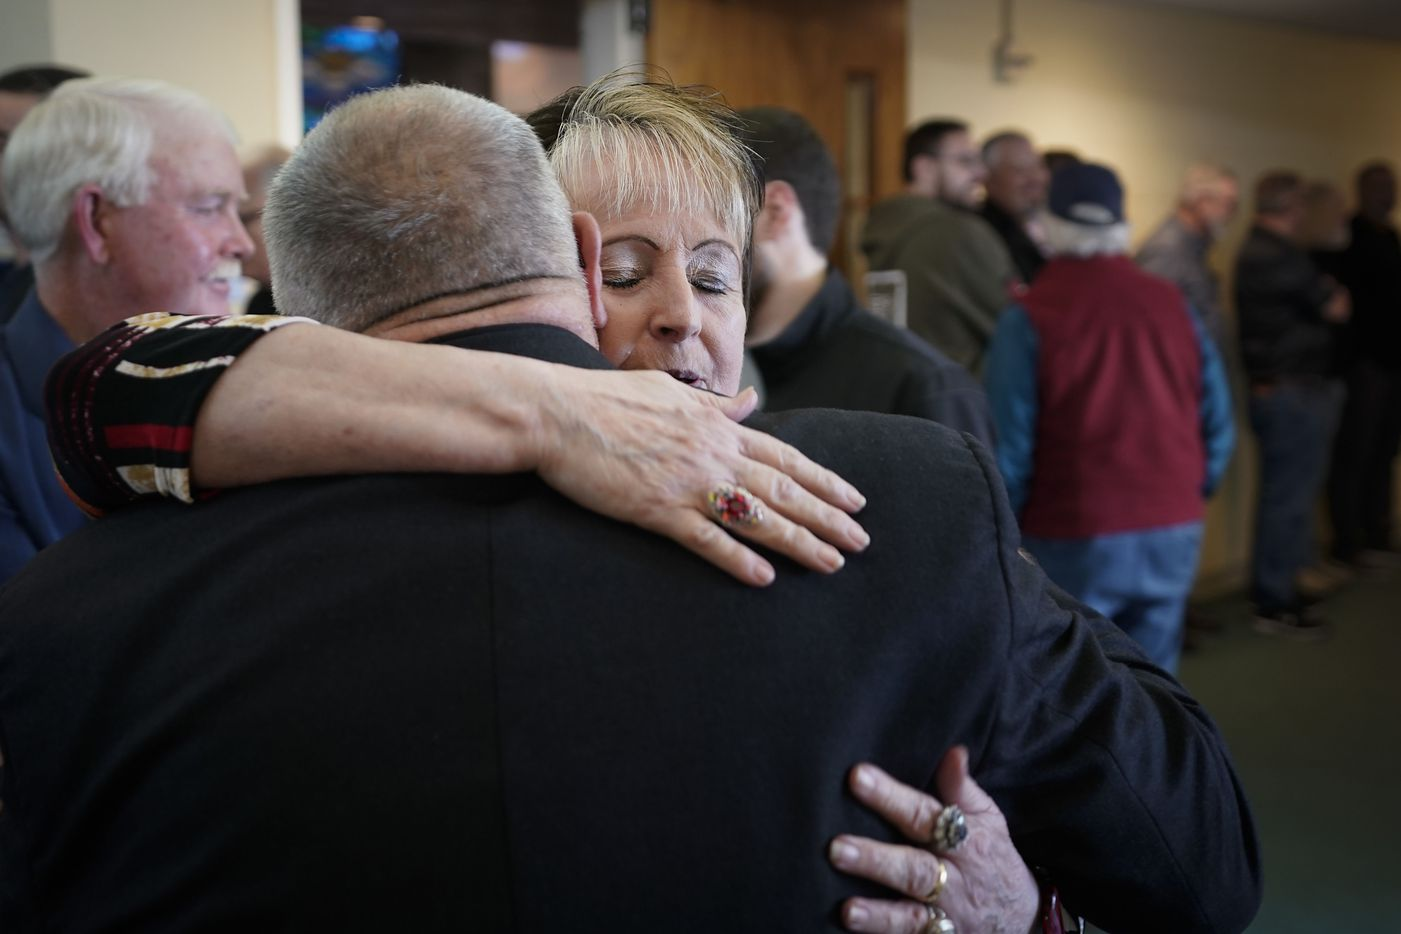 Cheryl Linam hugs Carl Chinn, the president of Faith Based Security Network, during a  church safety seminar at North Pointe Baptist Church on Sunday, Jan. 26, 2020, in Hurst, Texas. Linam lost her 7-year old daughter in a shooting at First Baptist Church in Daingerfield, Texas in 1980.